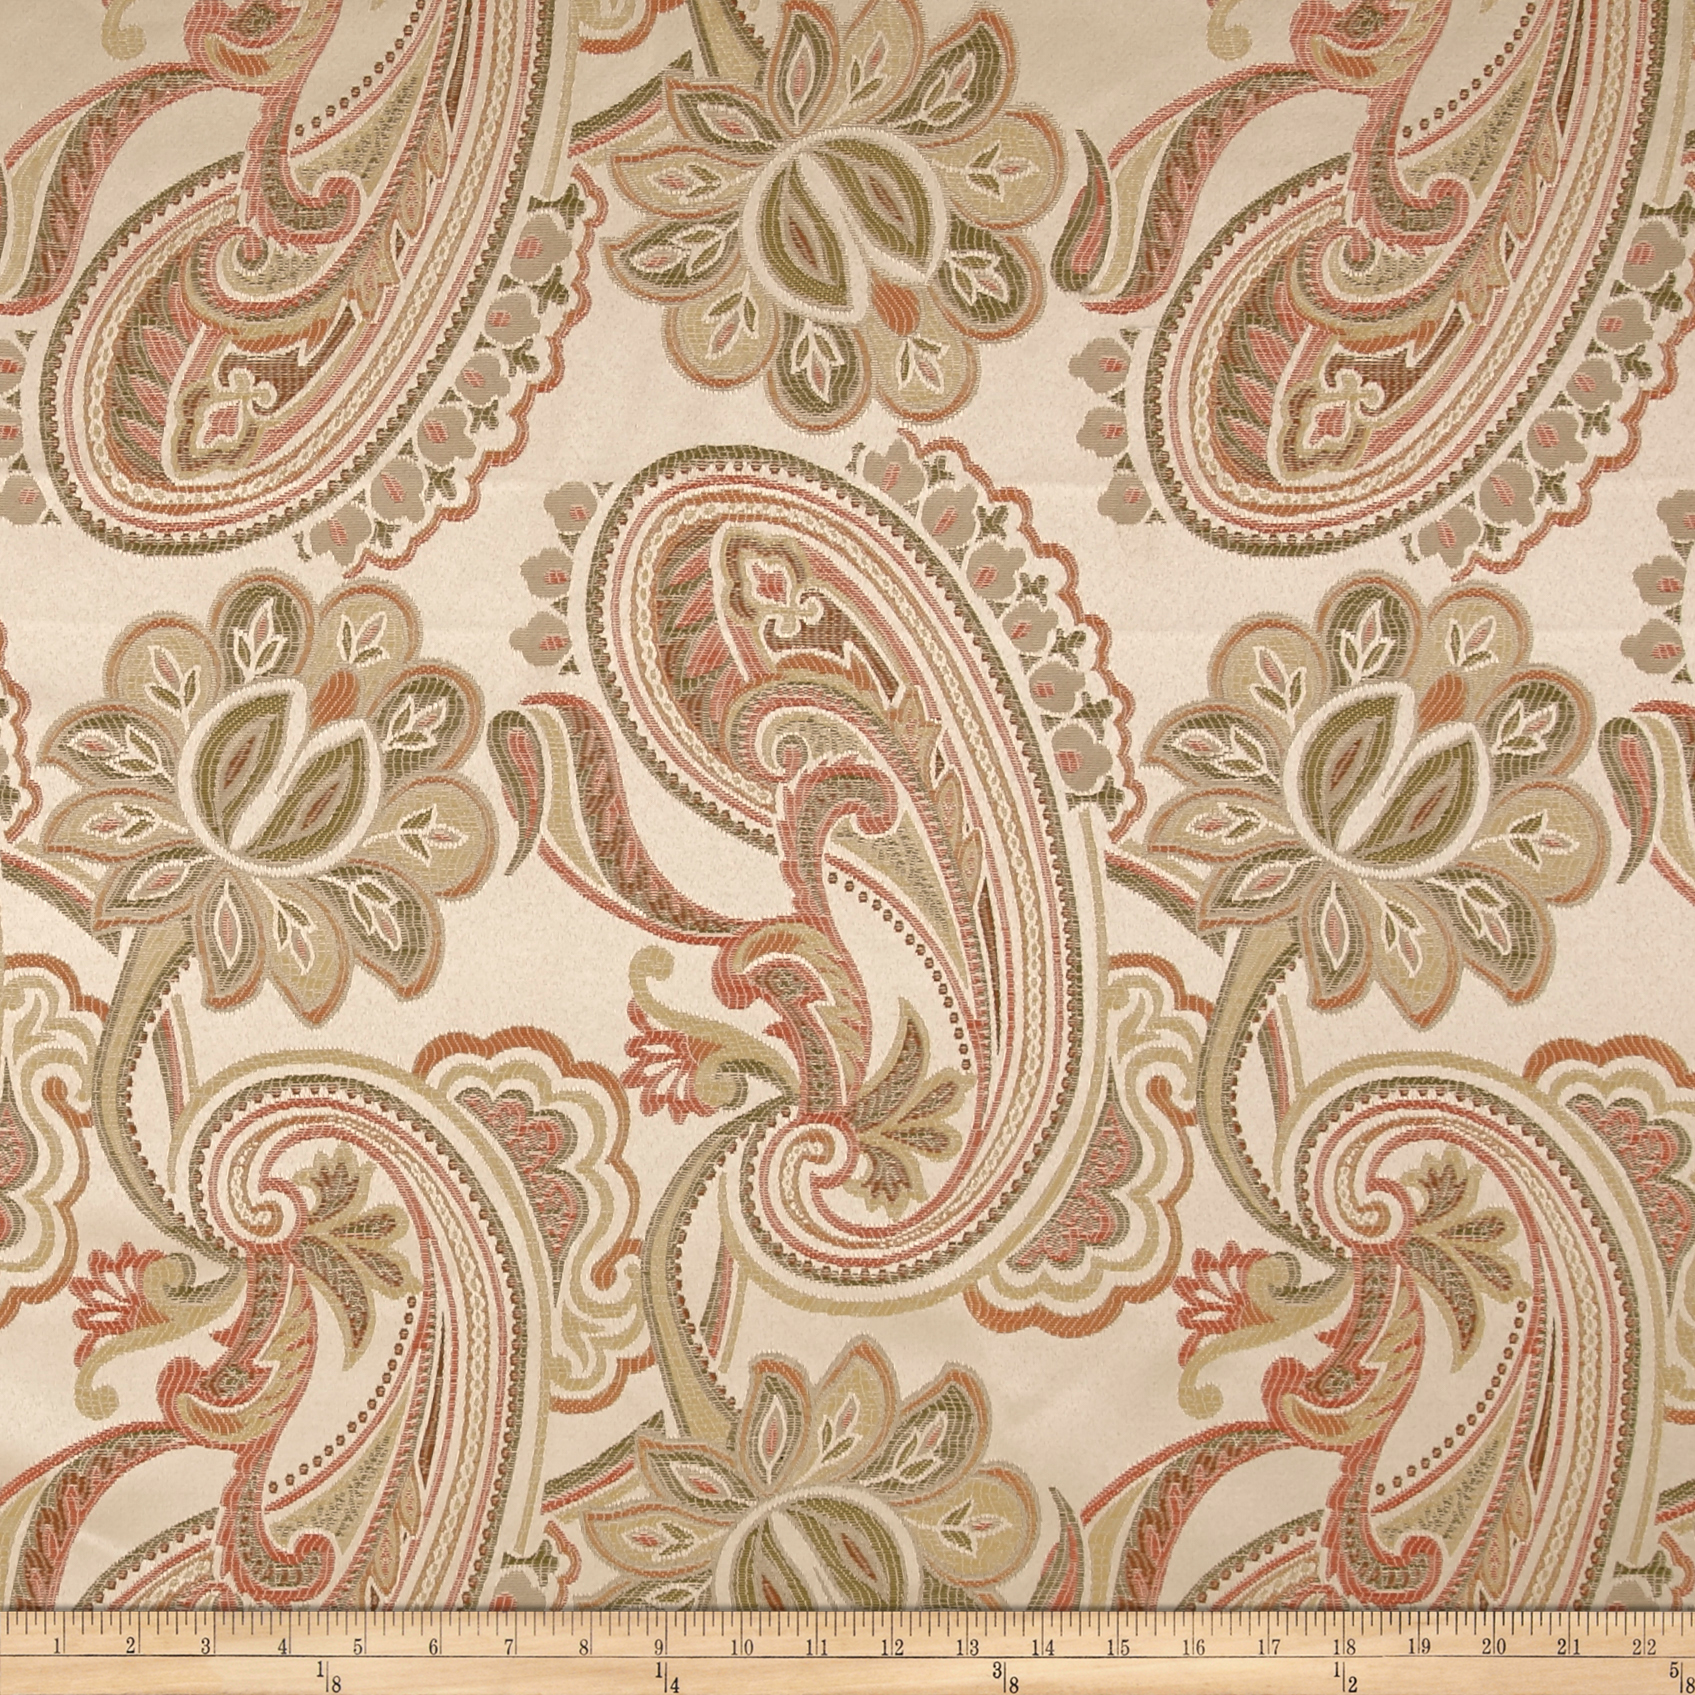 Eroica Dahlia Jacquard Coral Fabric by Eroica in USA